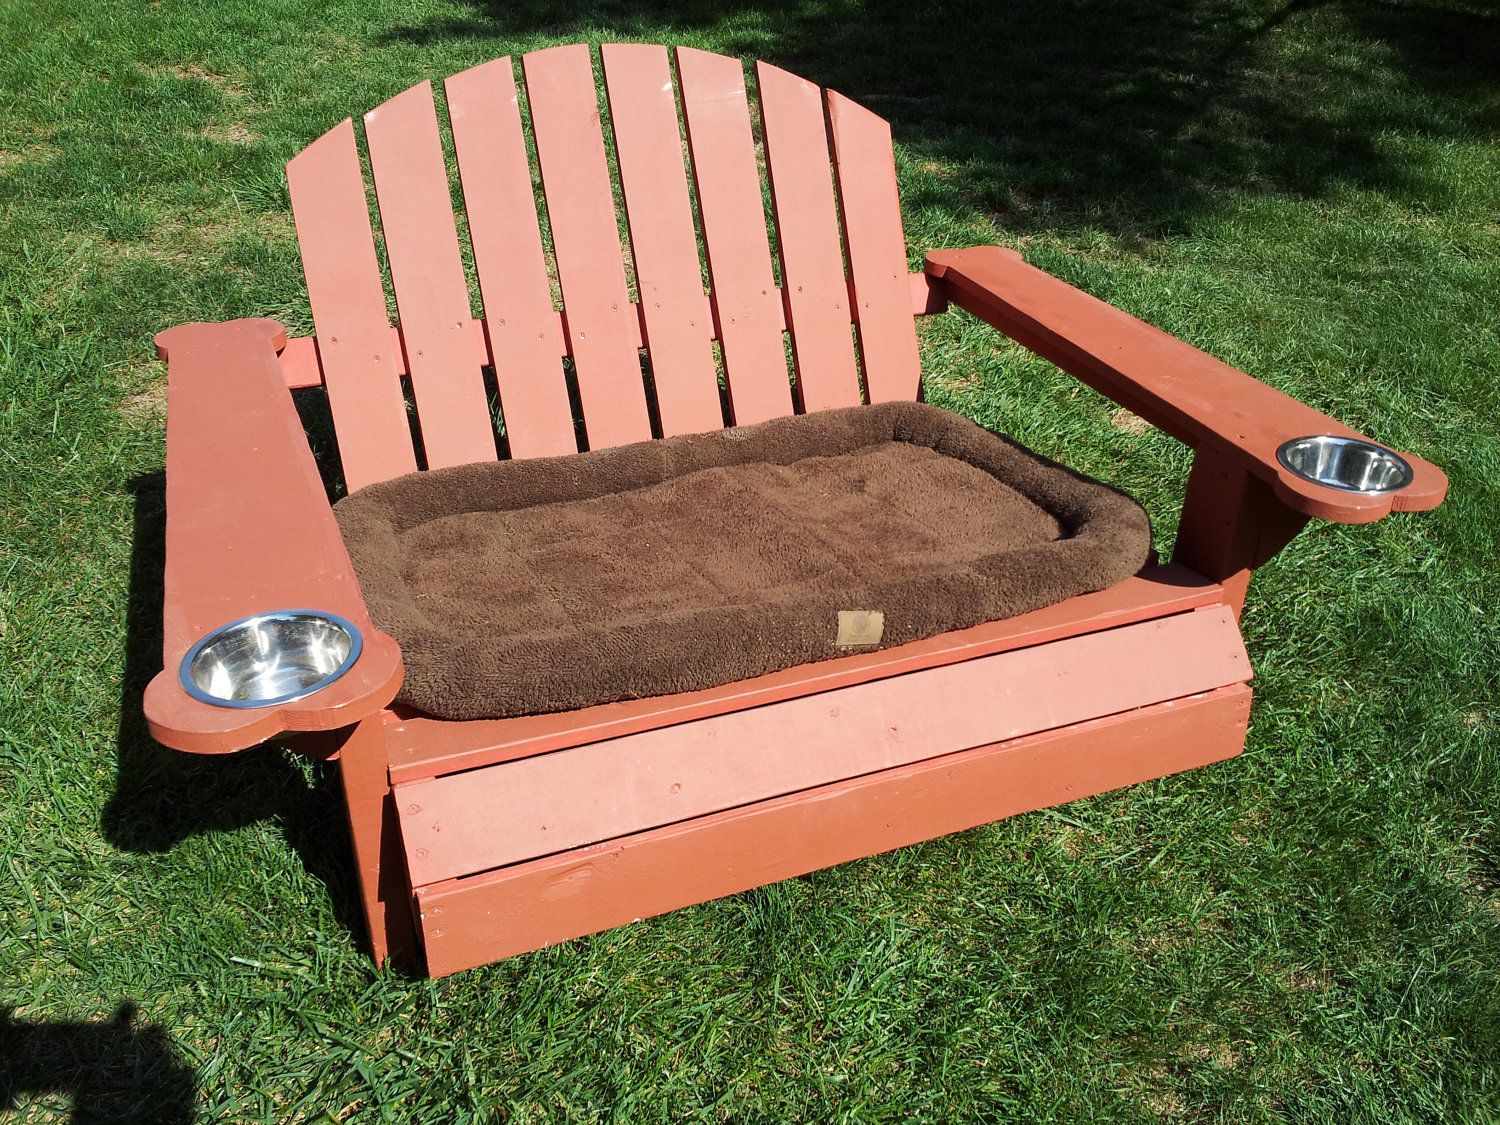 Swell Adirondack Dog Beds 150 00 Via Etsy I Need To Get This Forskolin Free Trial Chair Design Images Forskolin Free Trialorg